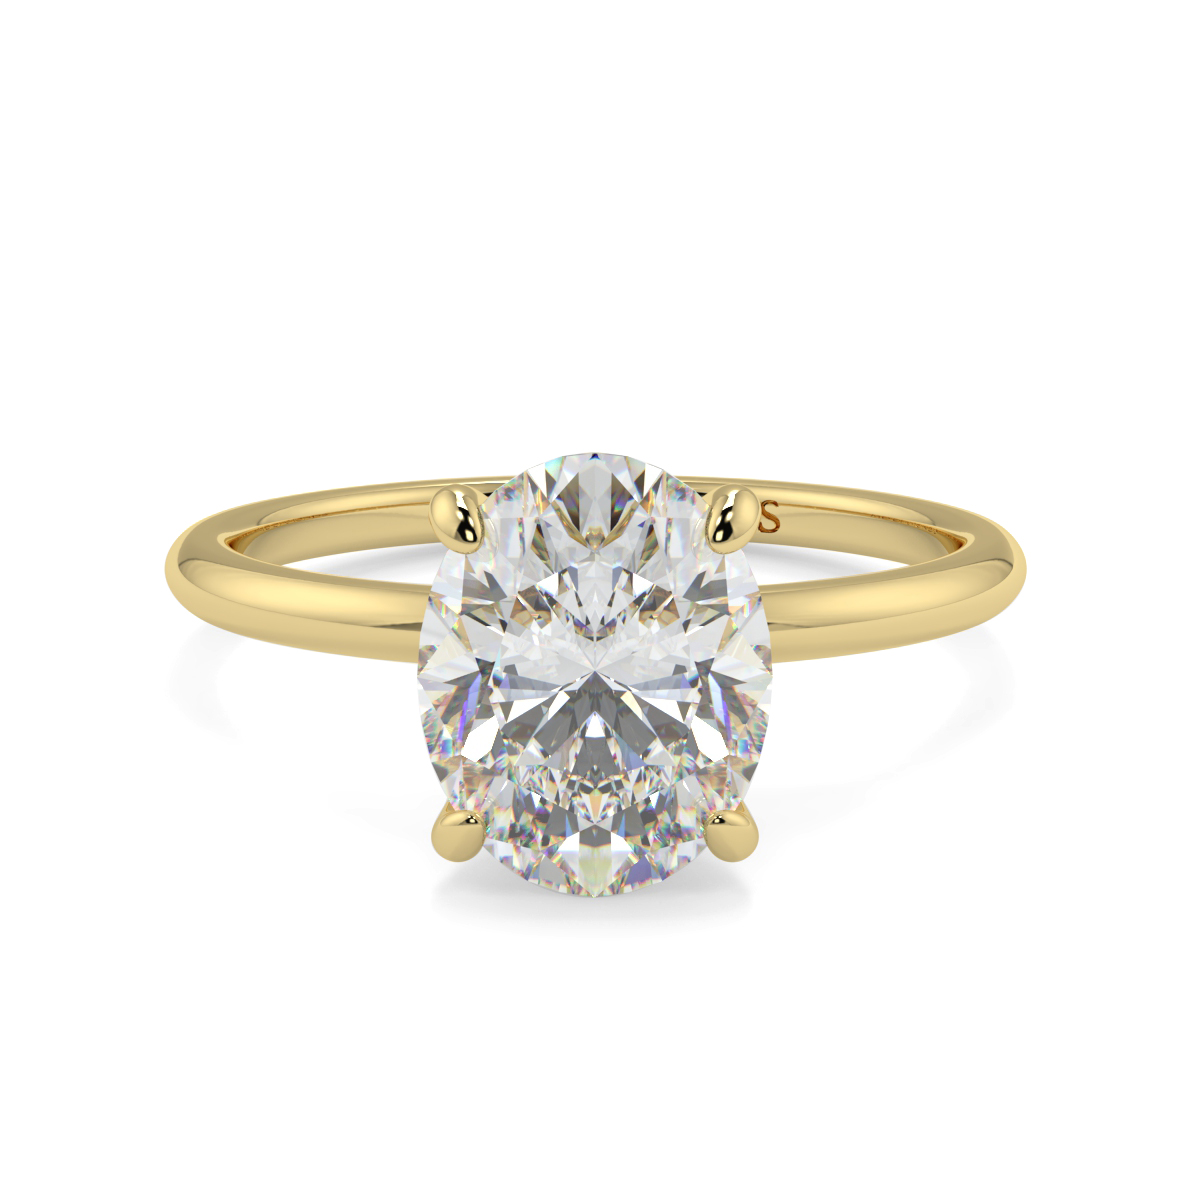 Oval 4 Claw Solitaire Ring